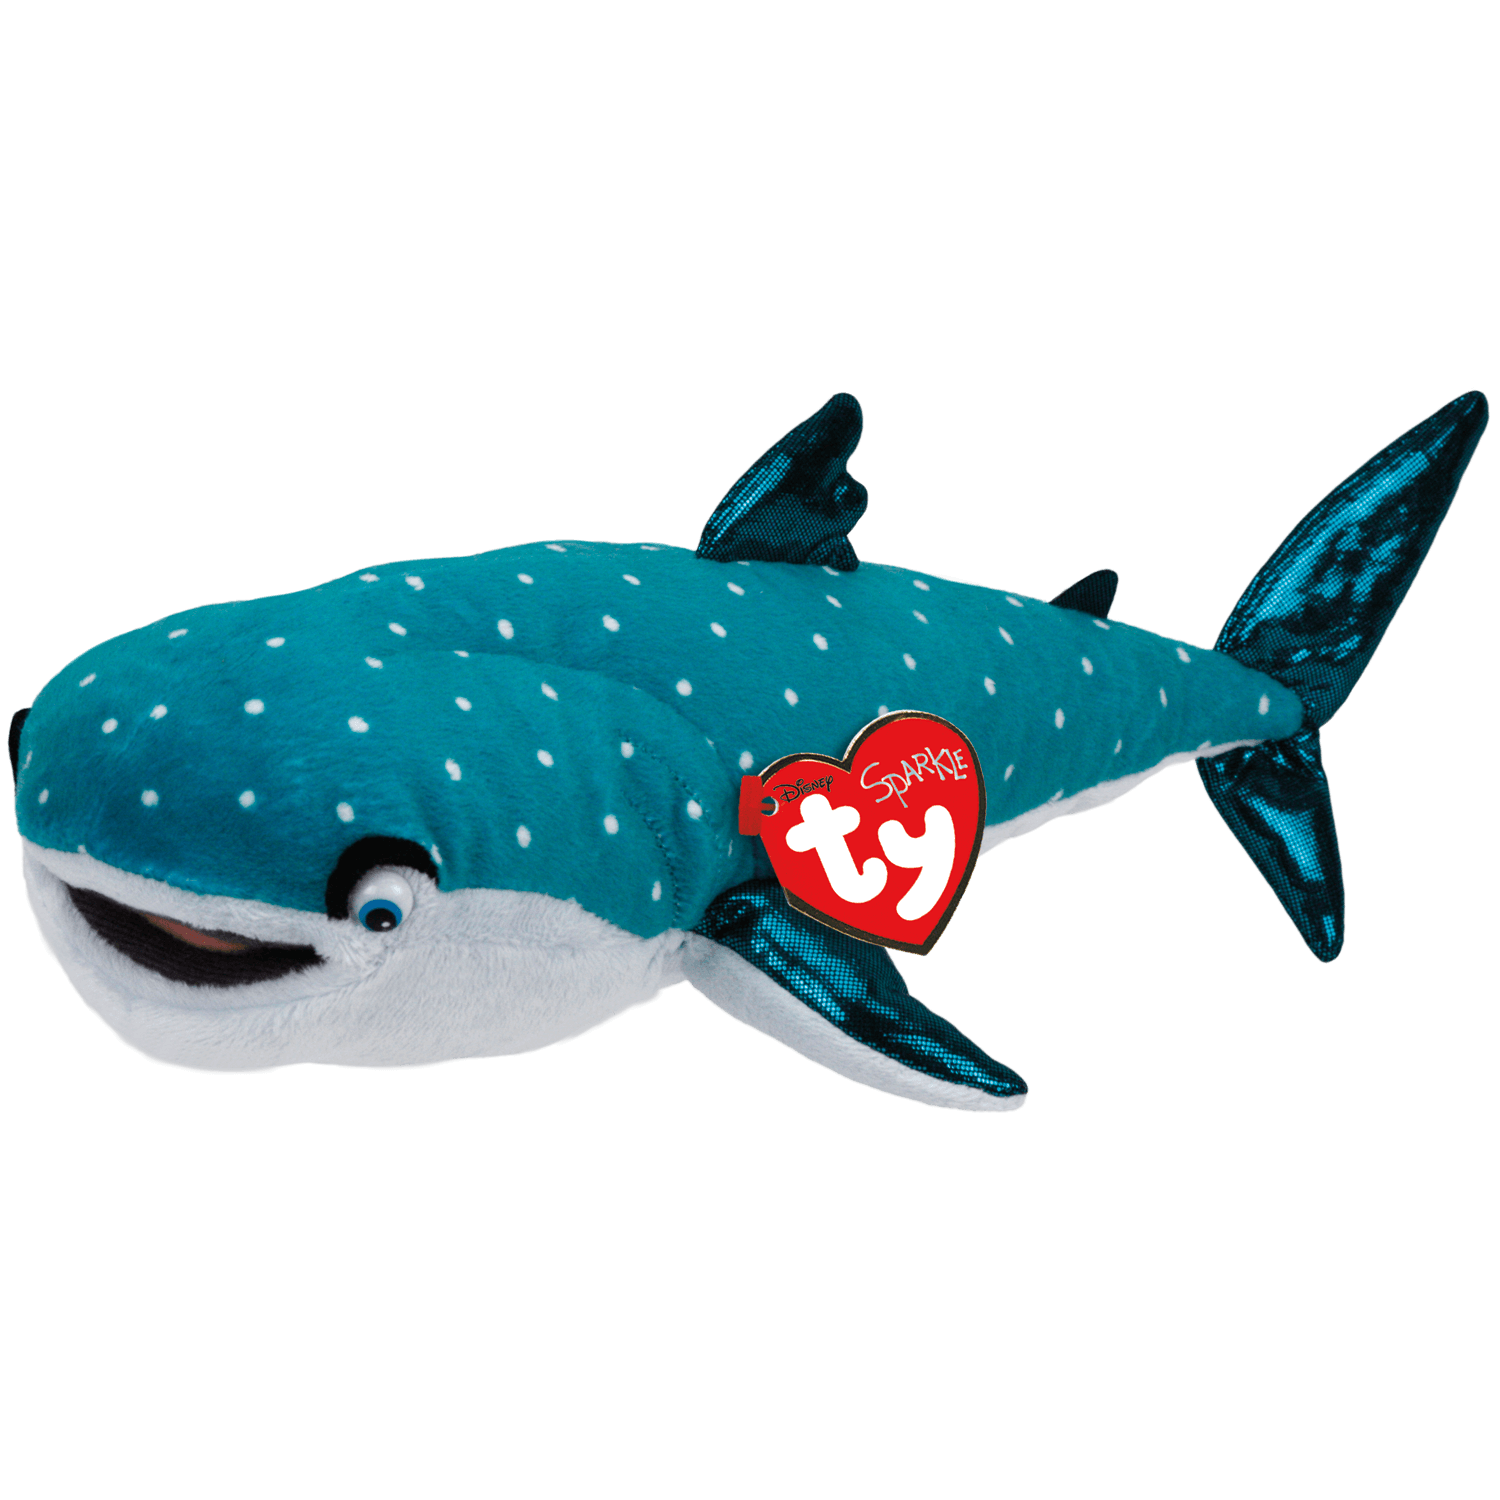 Destiny - Whale Shark From Finding Dory